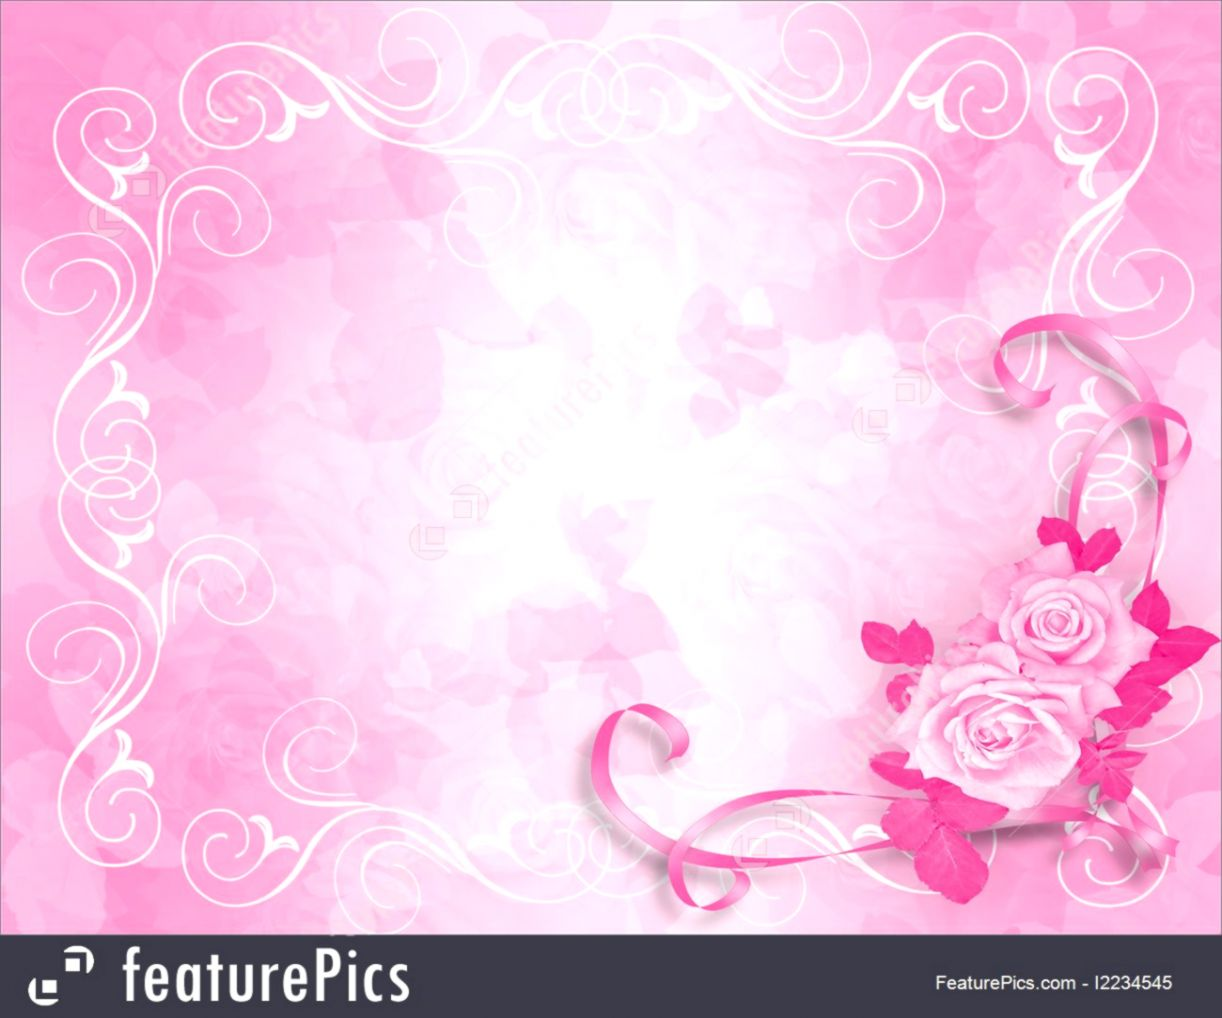 Background Wallpaper Hd Pink Invitation Root Wallpapers